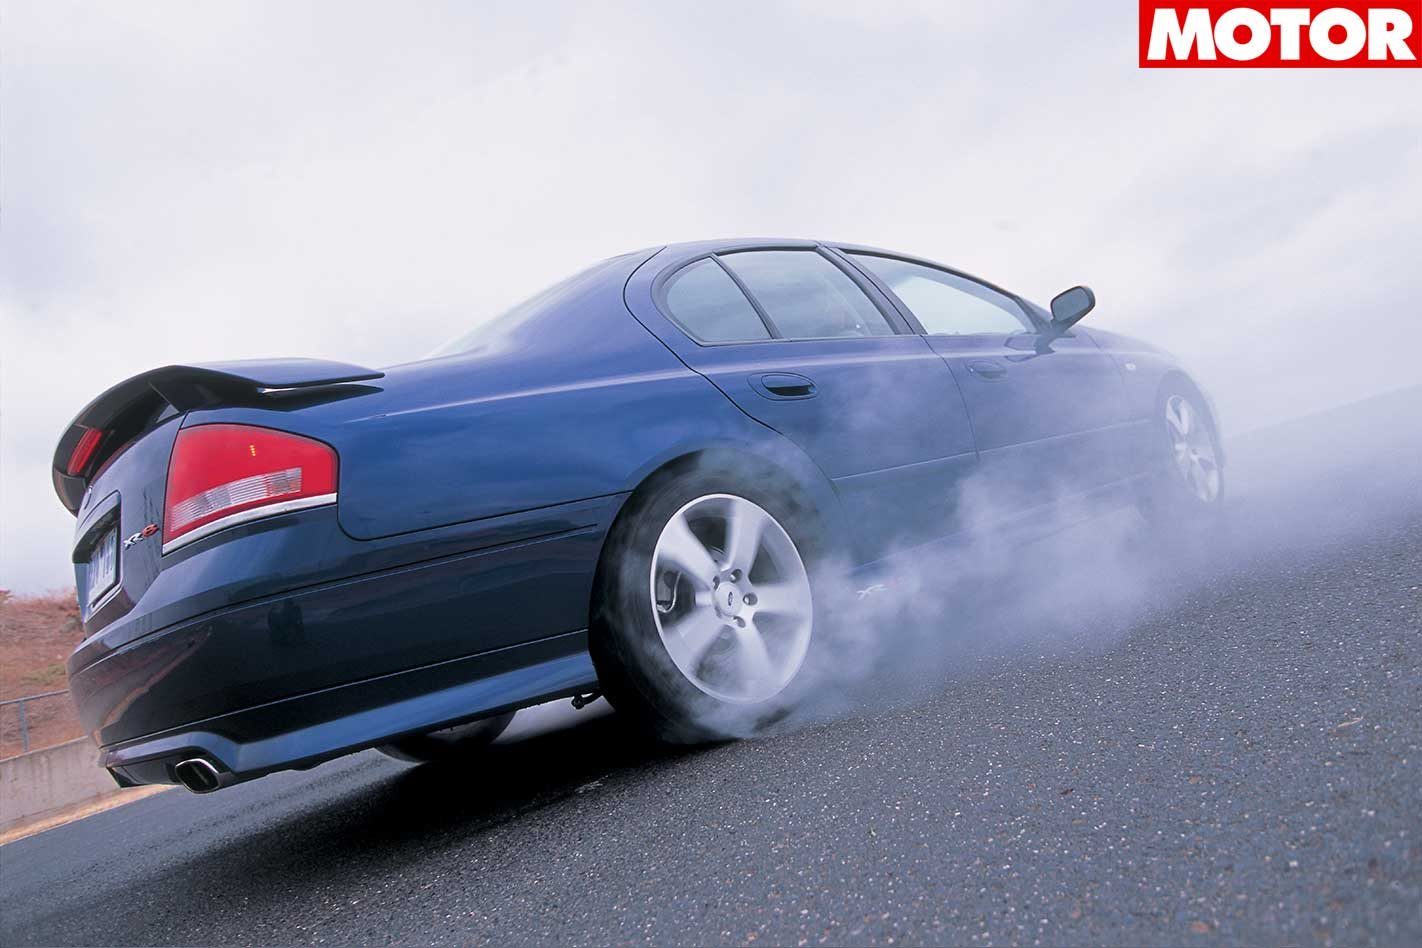 2003 Ford Falcon XR8 review: classic MOTOR